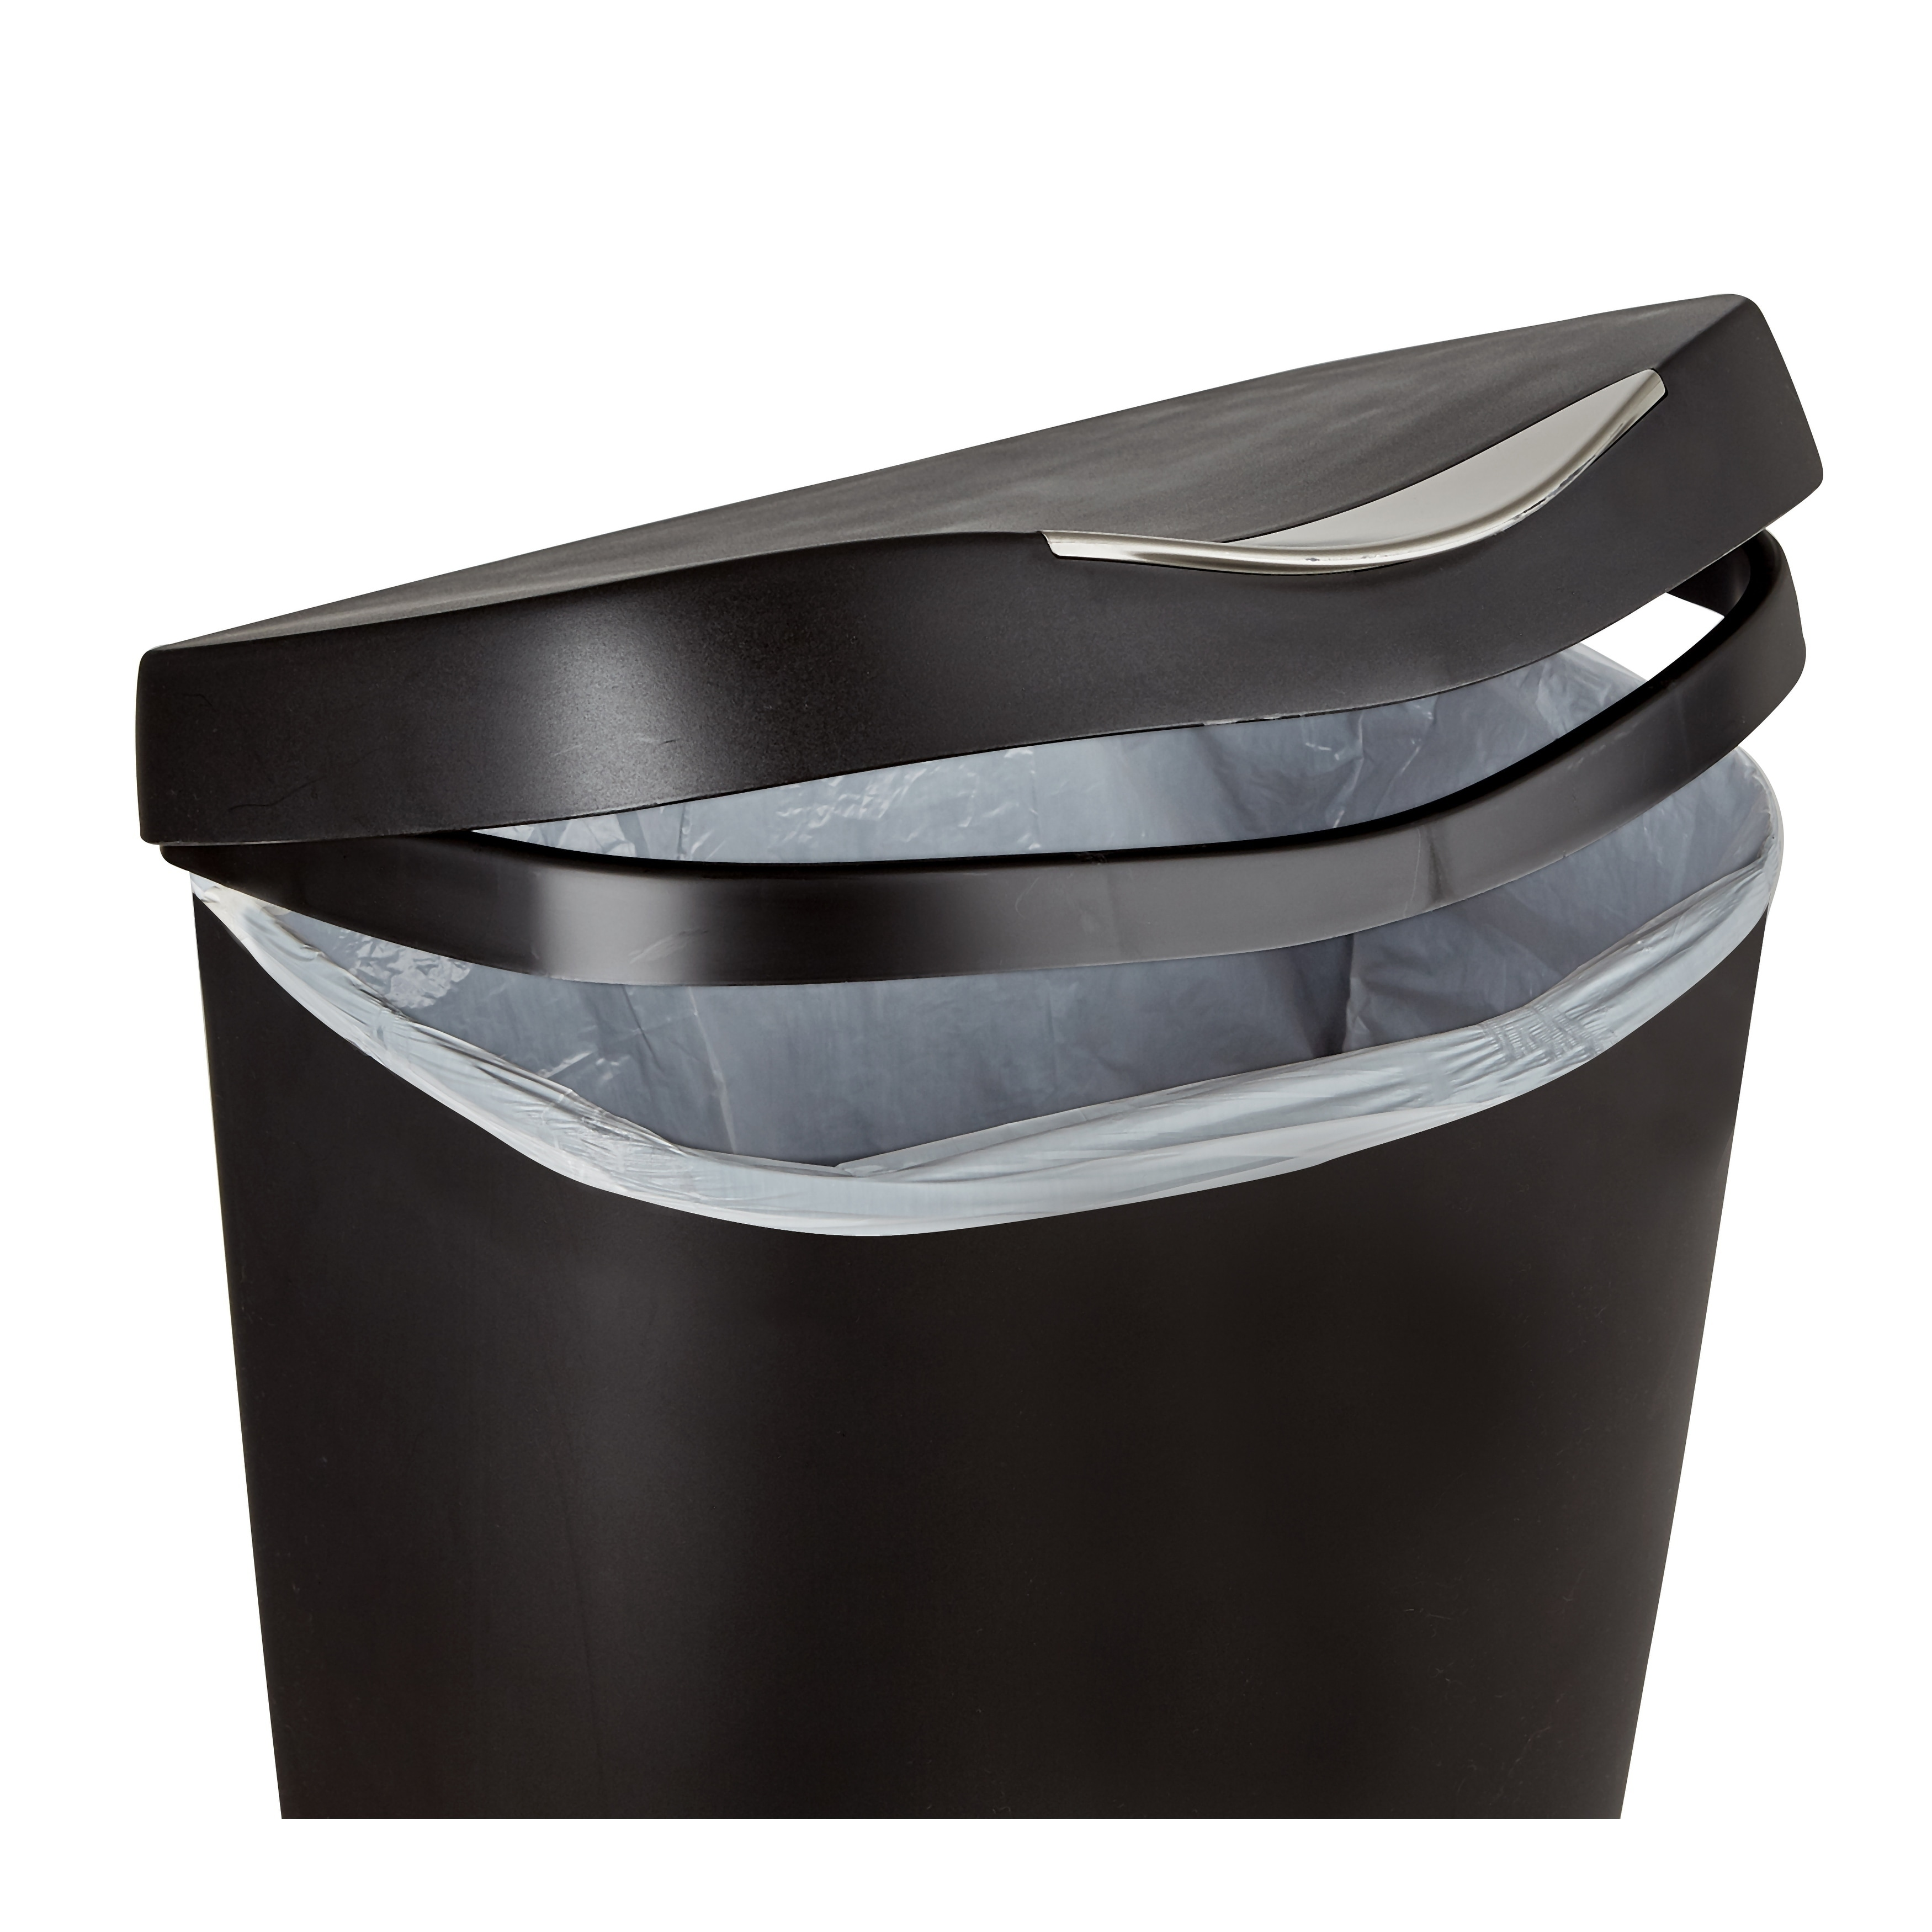 Umbra Brim Large 13 Gallon Trash Can With Foot Pedal And Lid Free Shipping On Orders Over 45 18616226